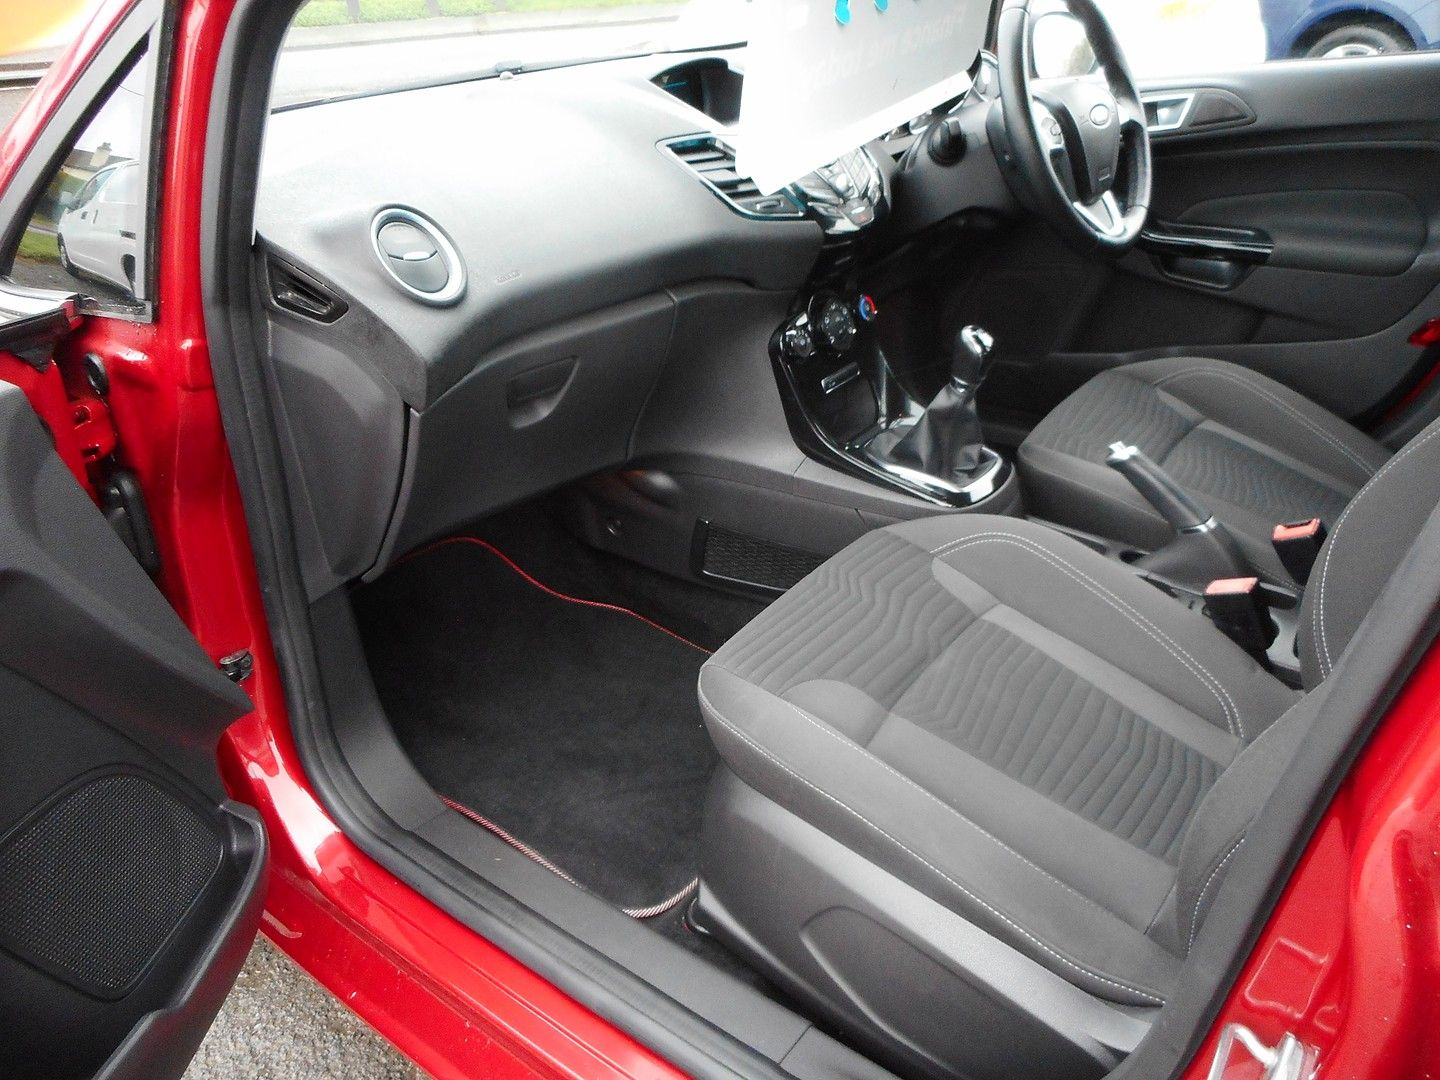 FORD Fiesta Zetec 1.0 80PS Start/Stop (2015) - Picture 5